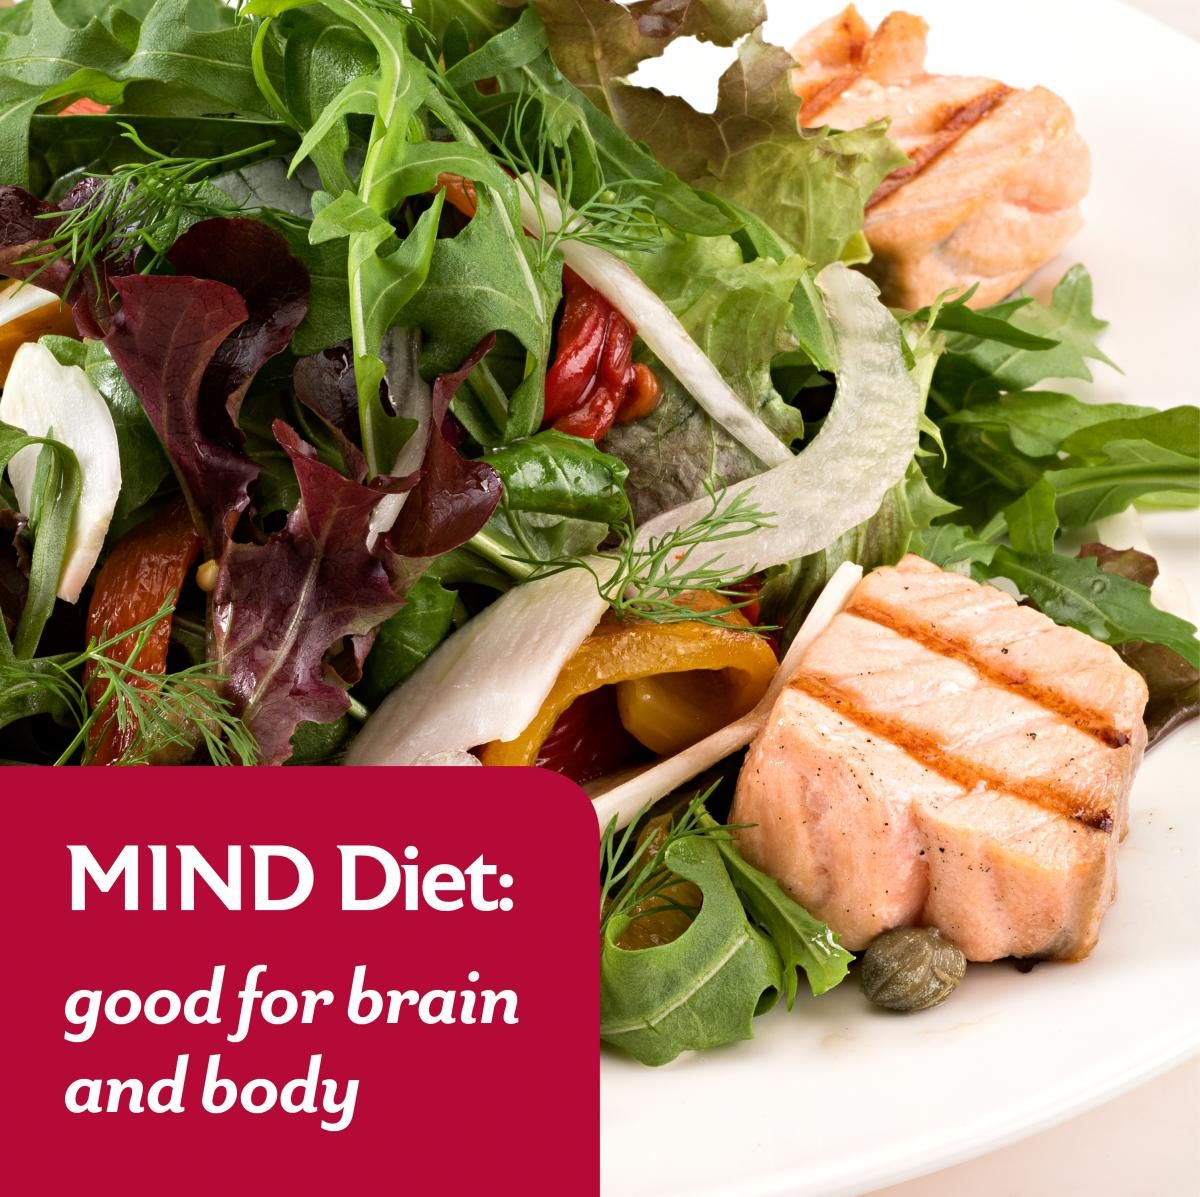 Looking for a change in diet that boosts your brain and